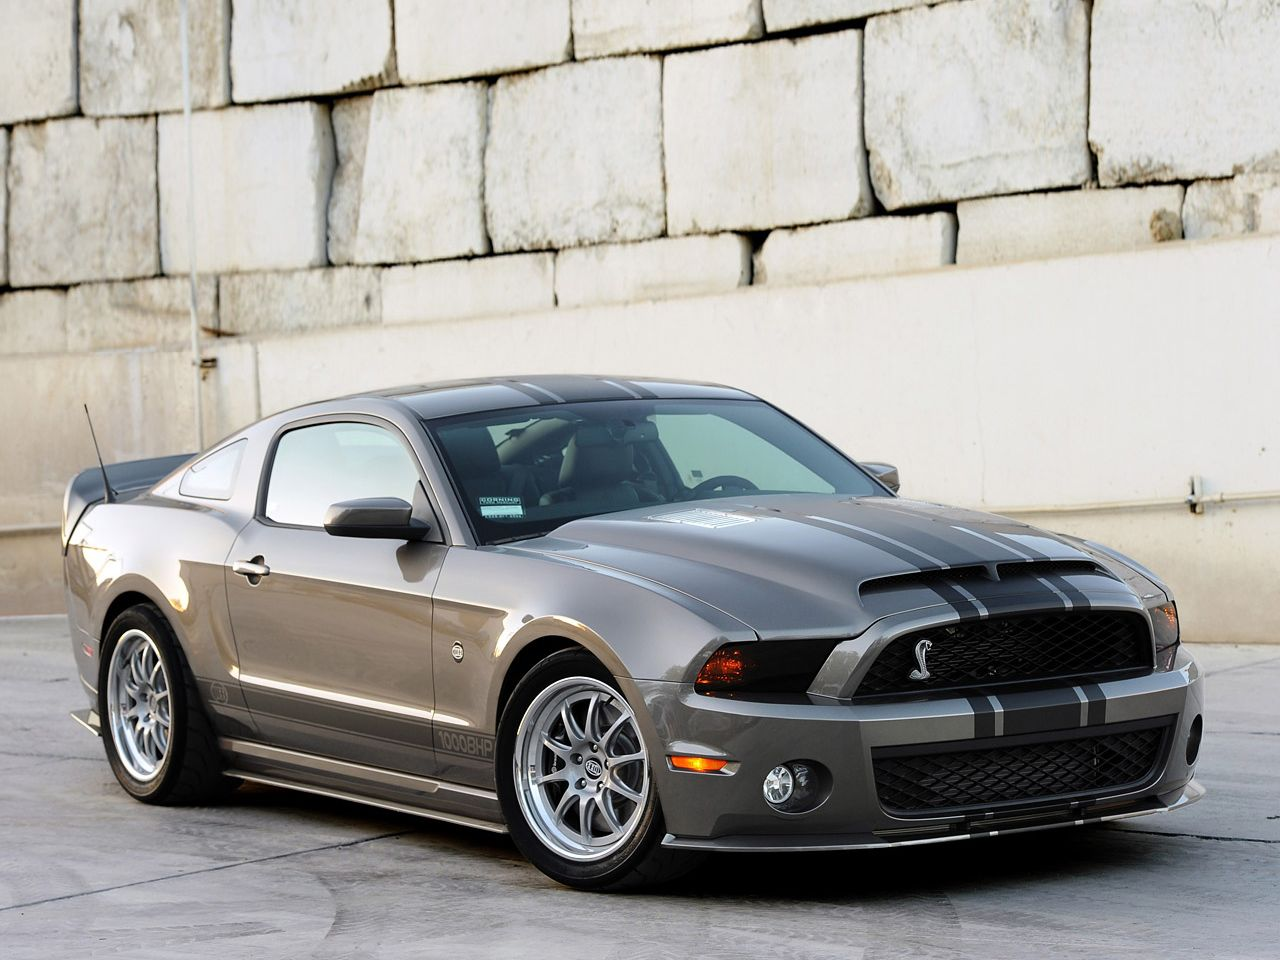 This Ford Mustang Cobra is a monster!!!